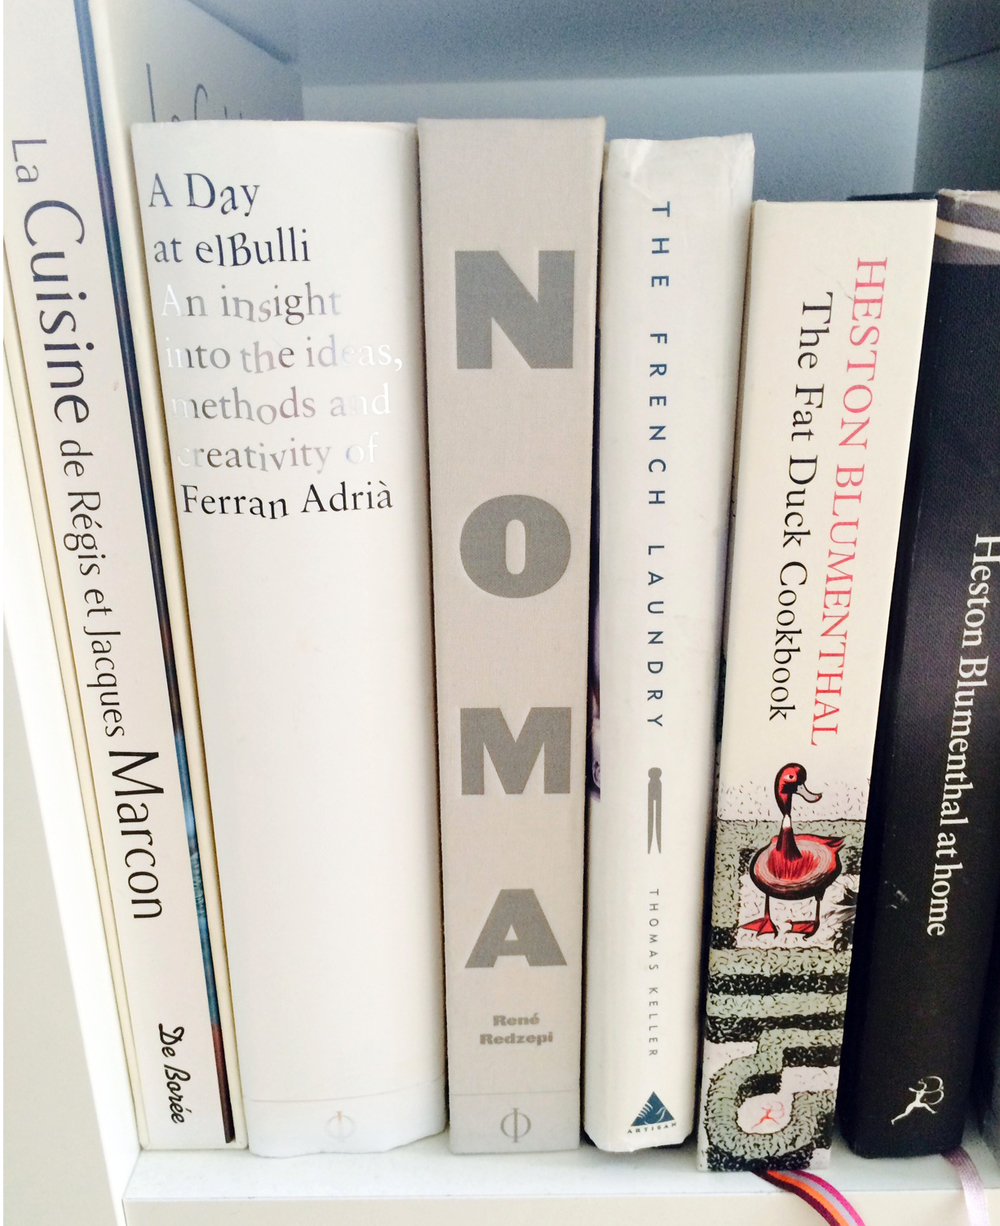 Noma, El Bulli, The Fat Duck, The French Laundry…now where can i get some sea purslane and spruce shoots?